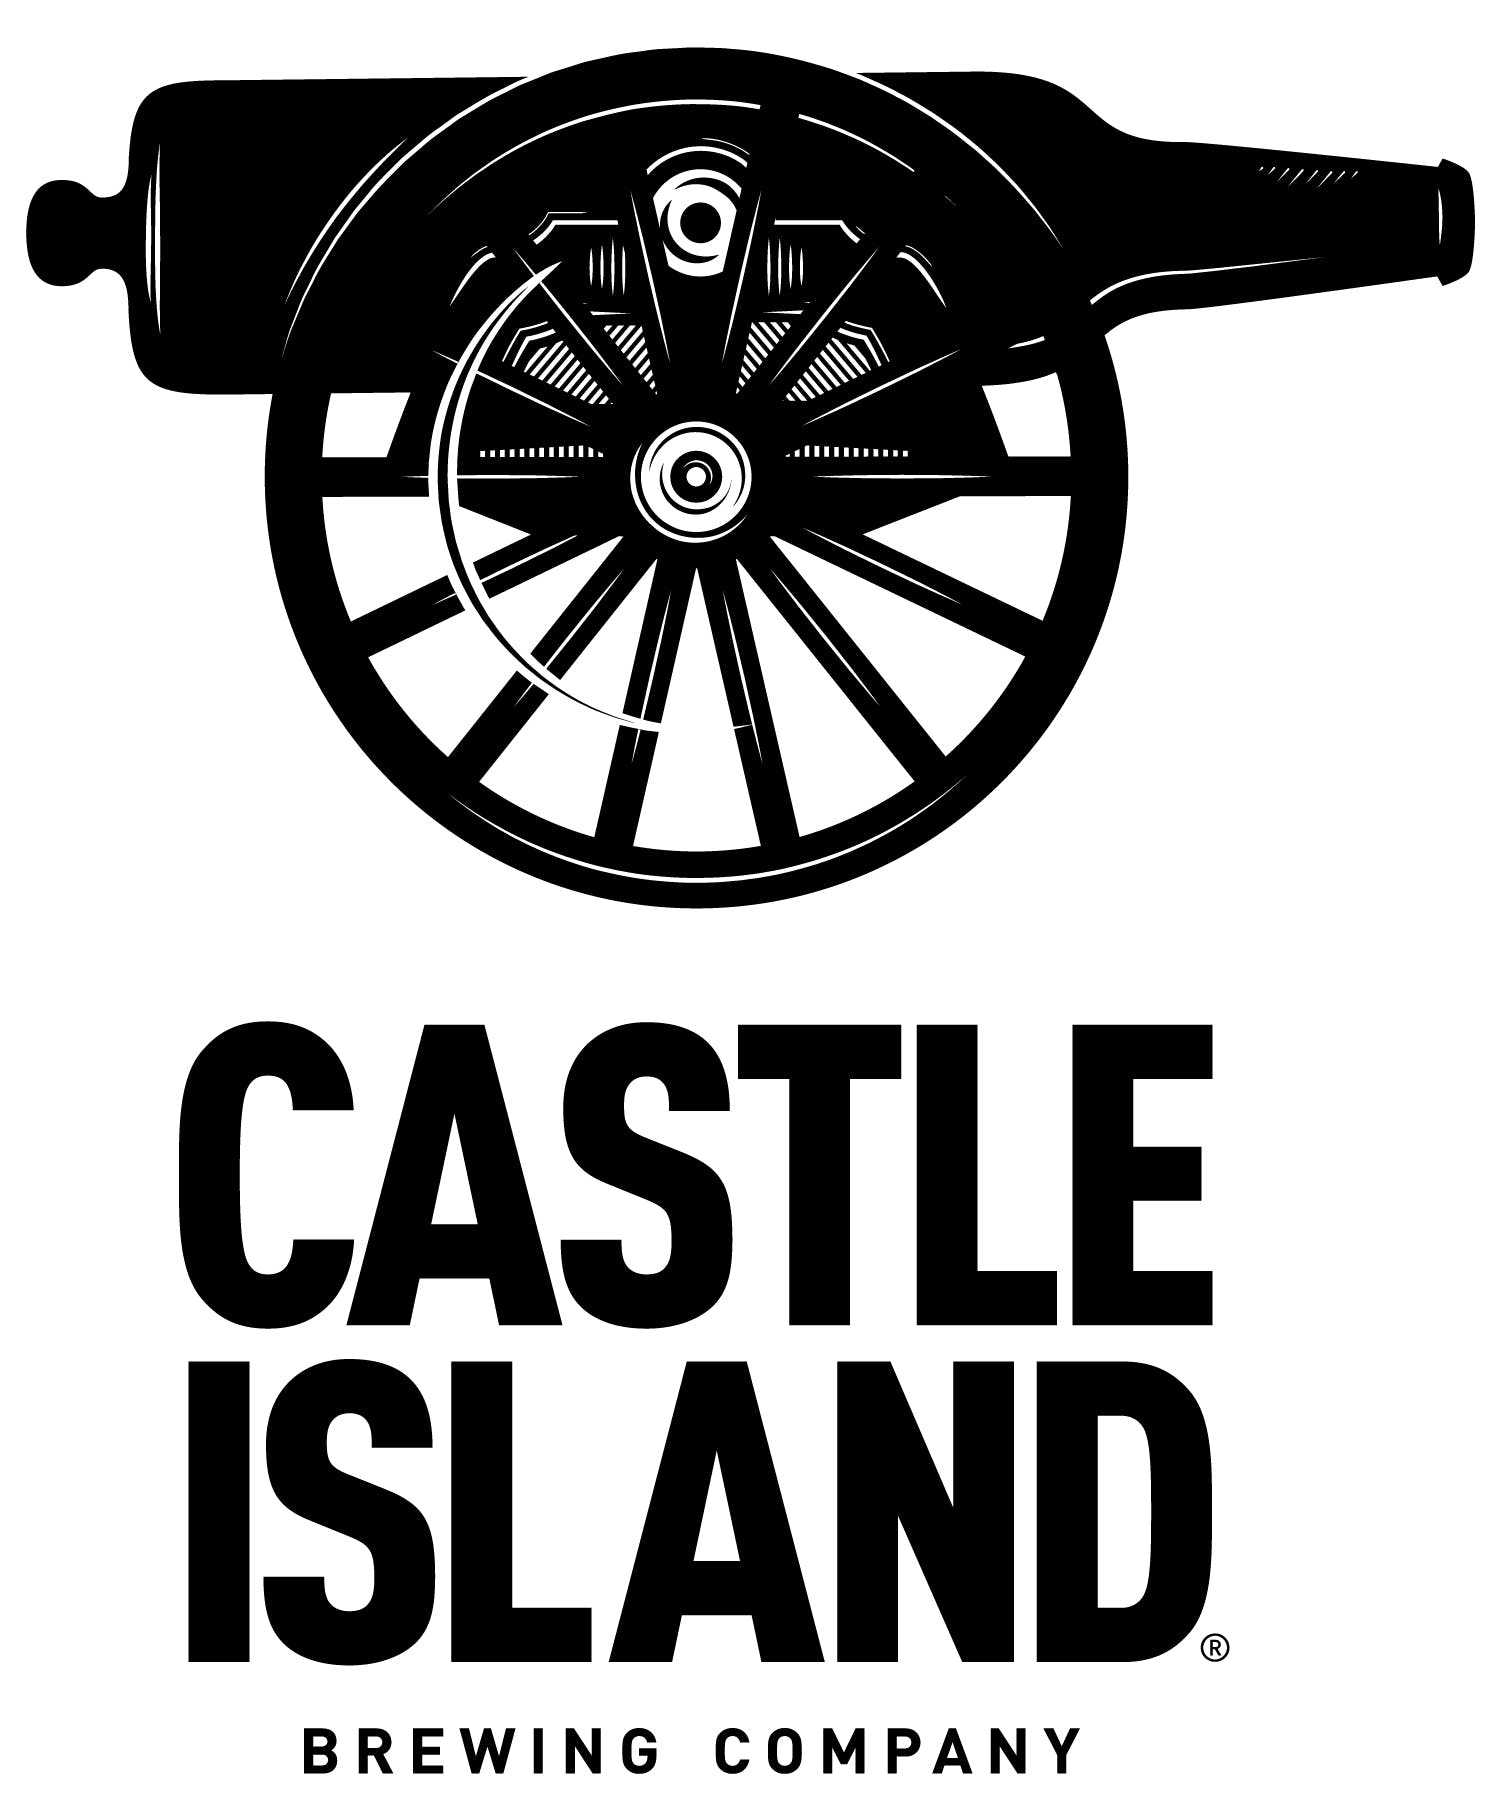 Craft Beer Guild of Rhode Island Welcomes Castle Island Brewing